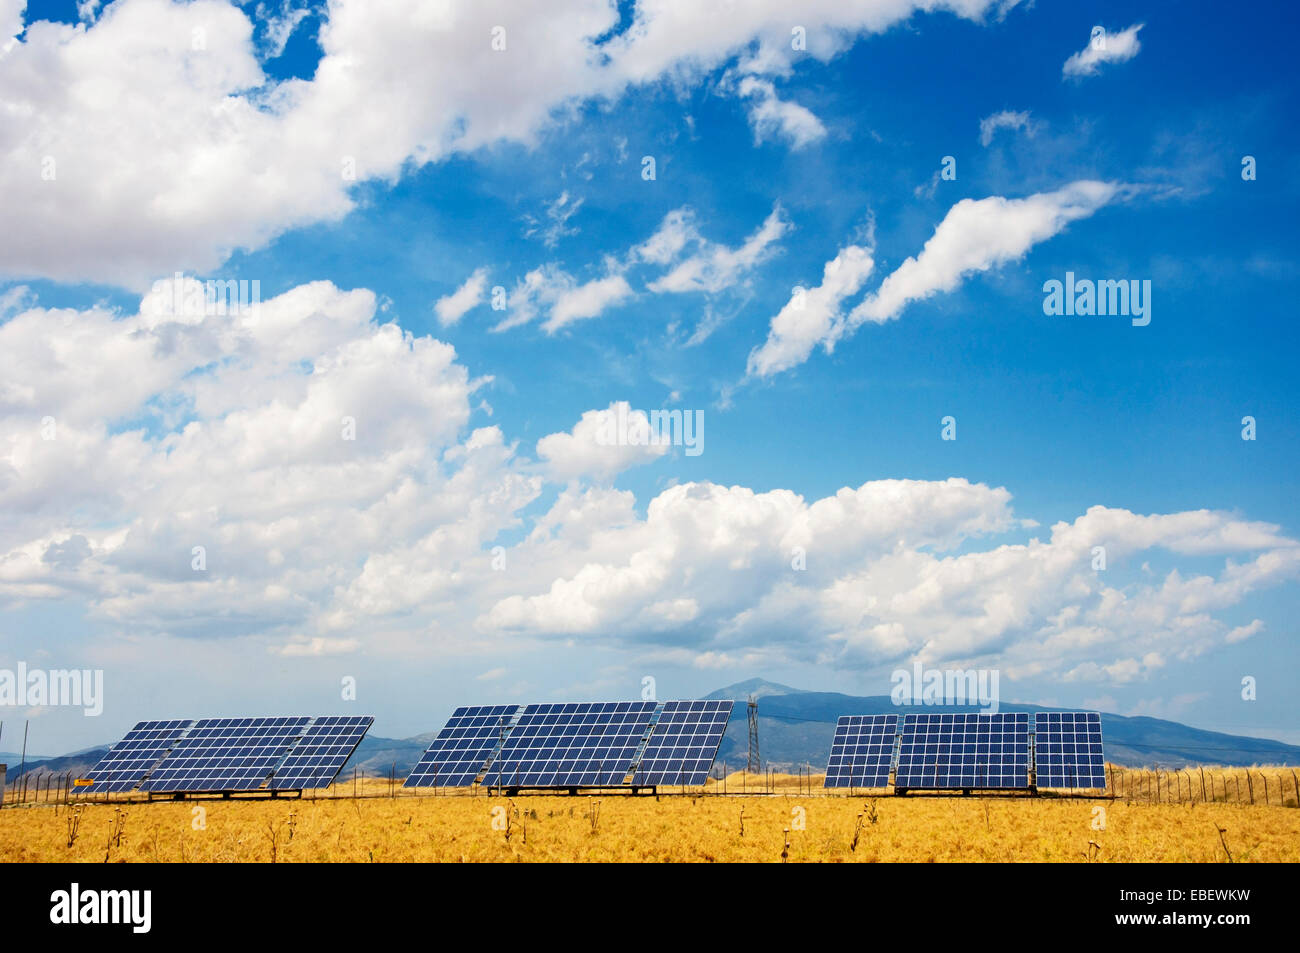 Solar power modules in a corn field in Thessaly, Greece - Stock Image